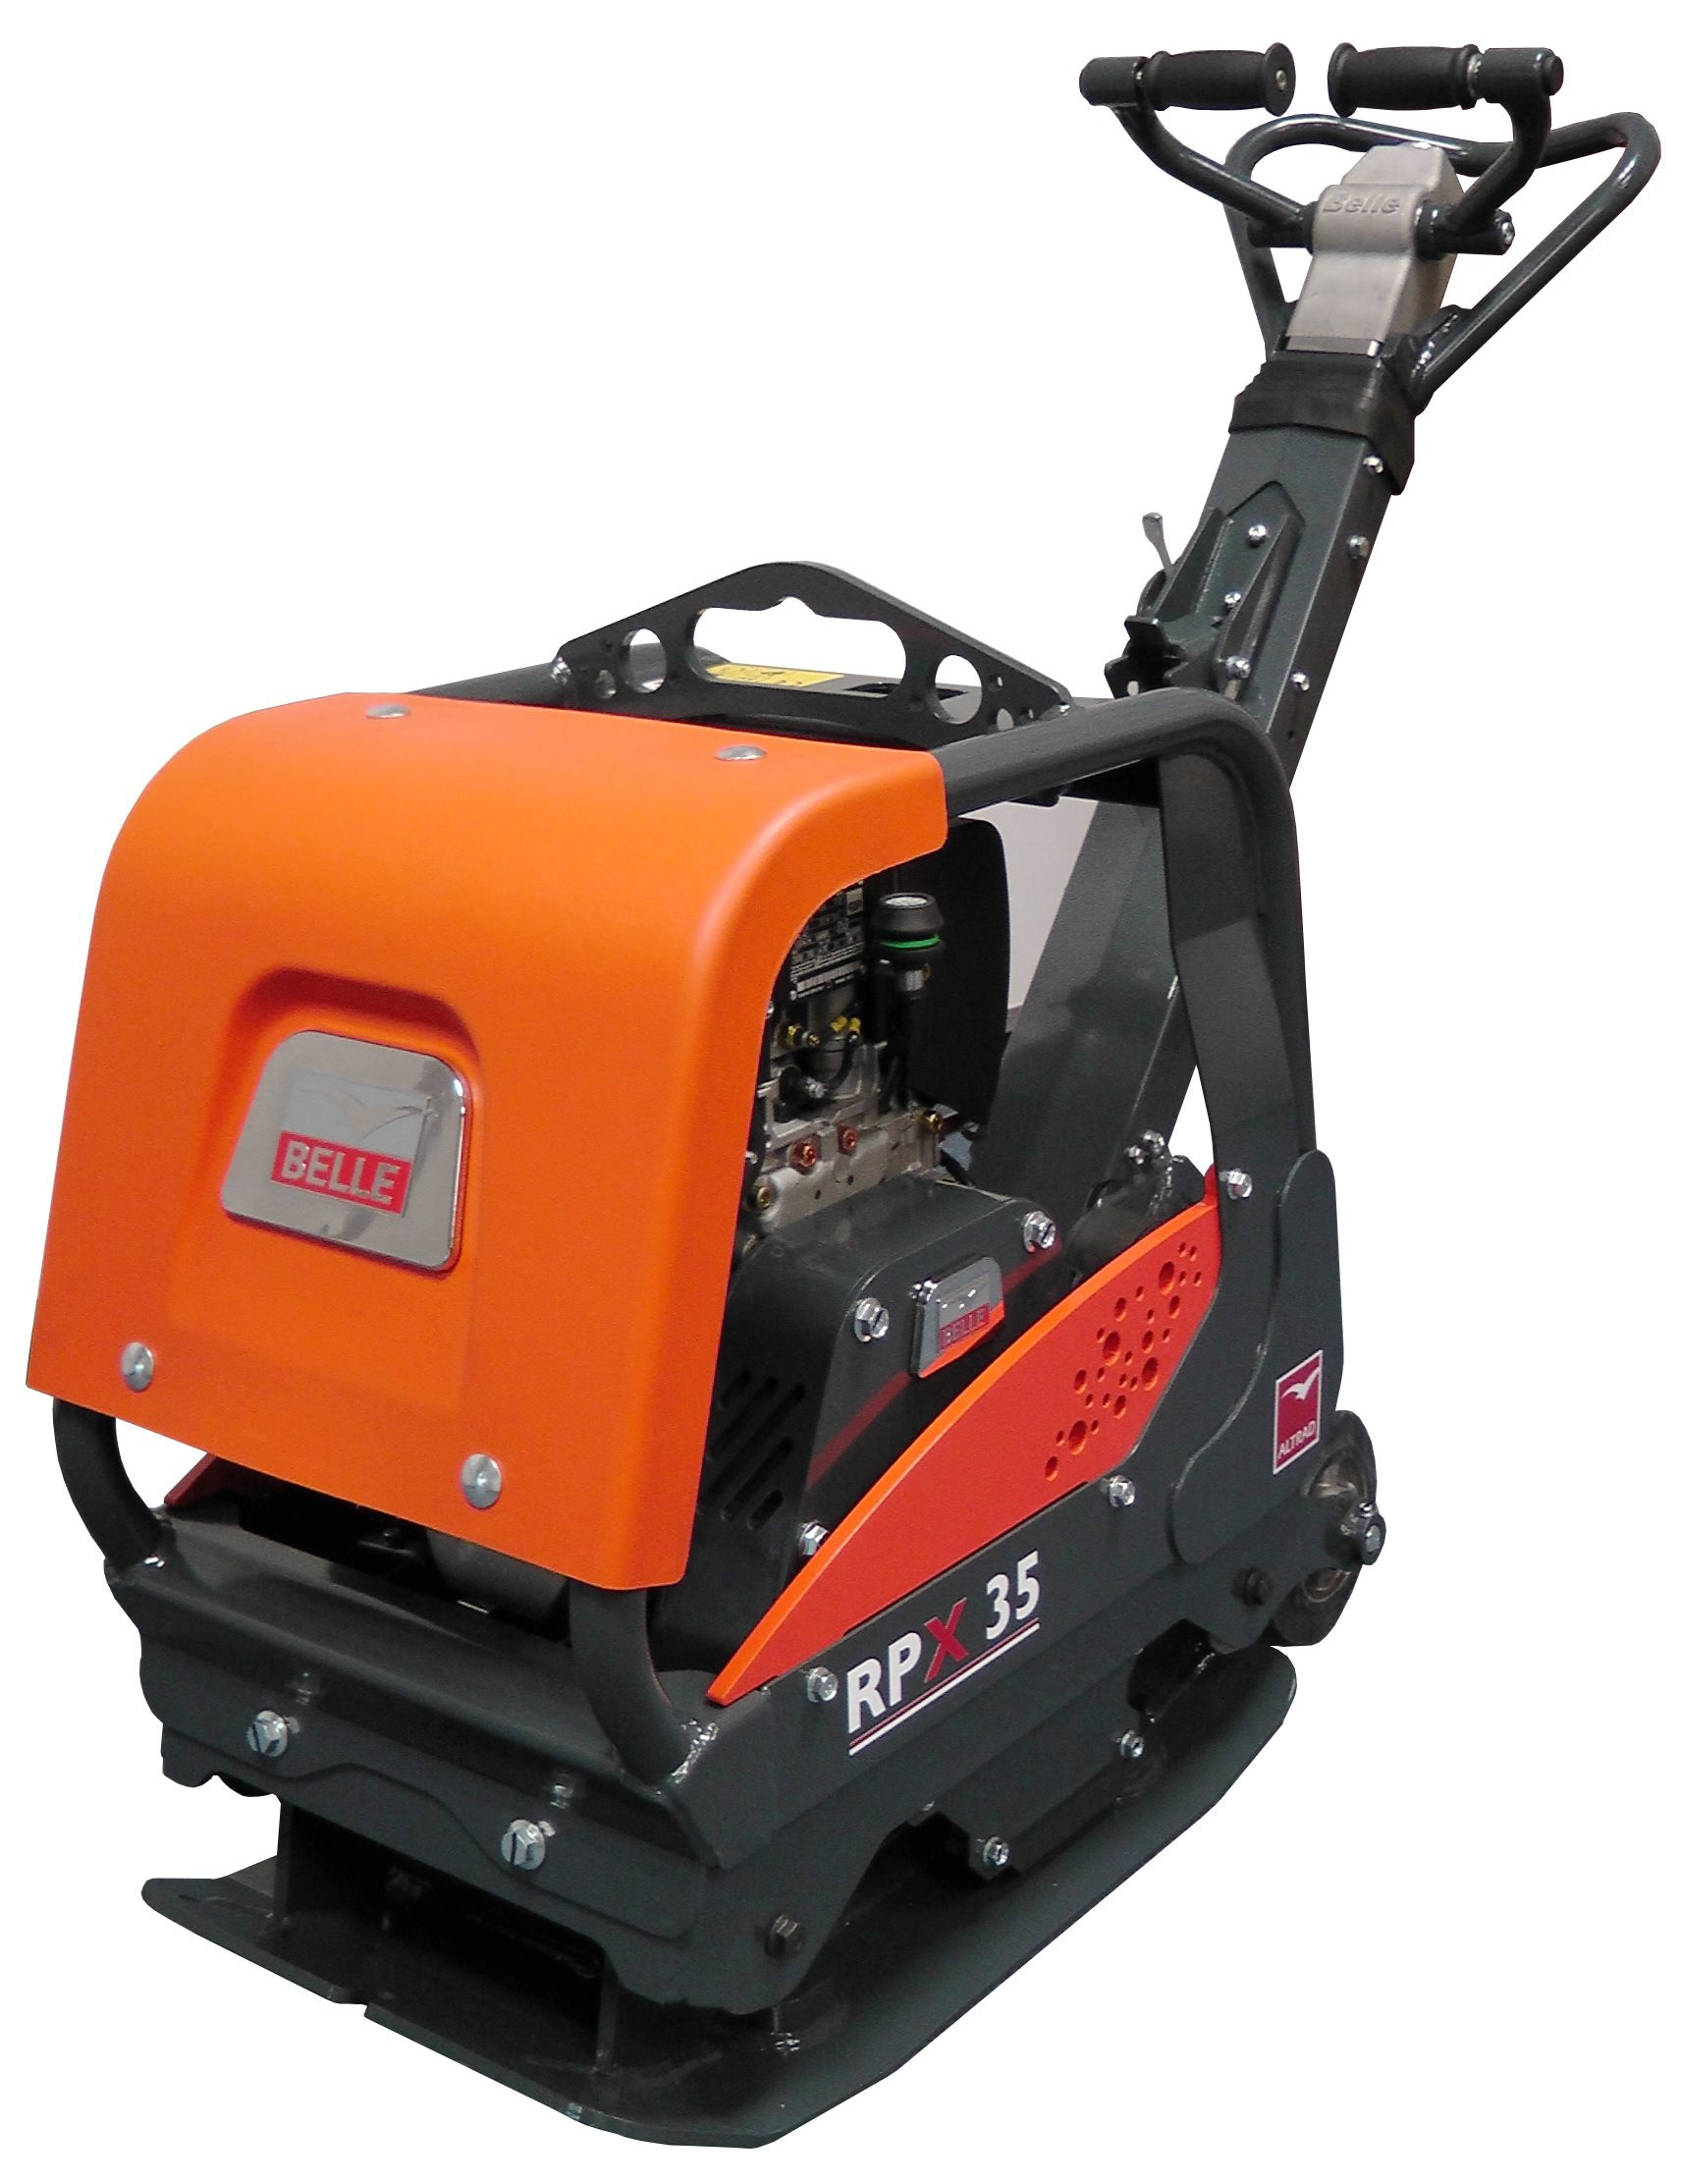 Belle RPX 35 reversible plate compactor